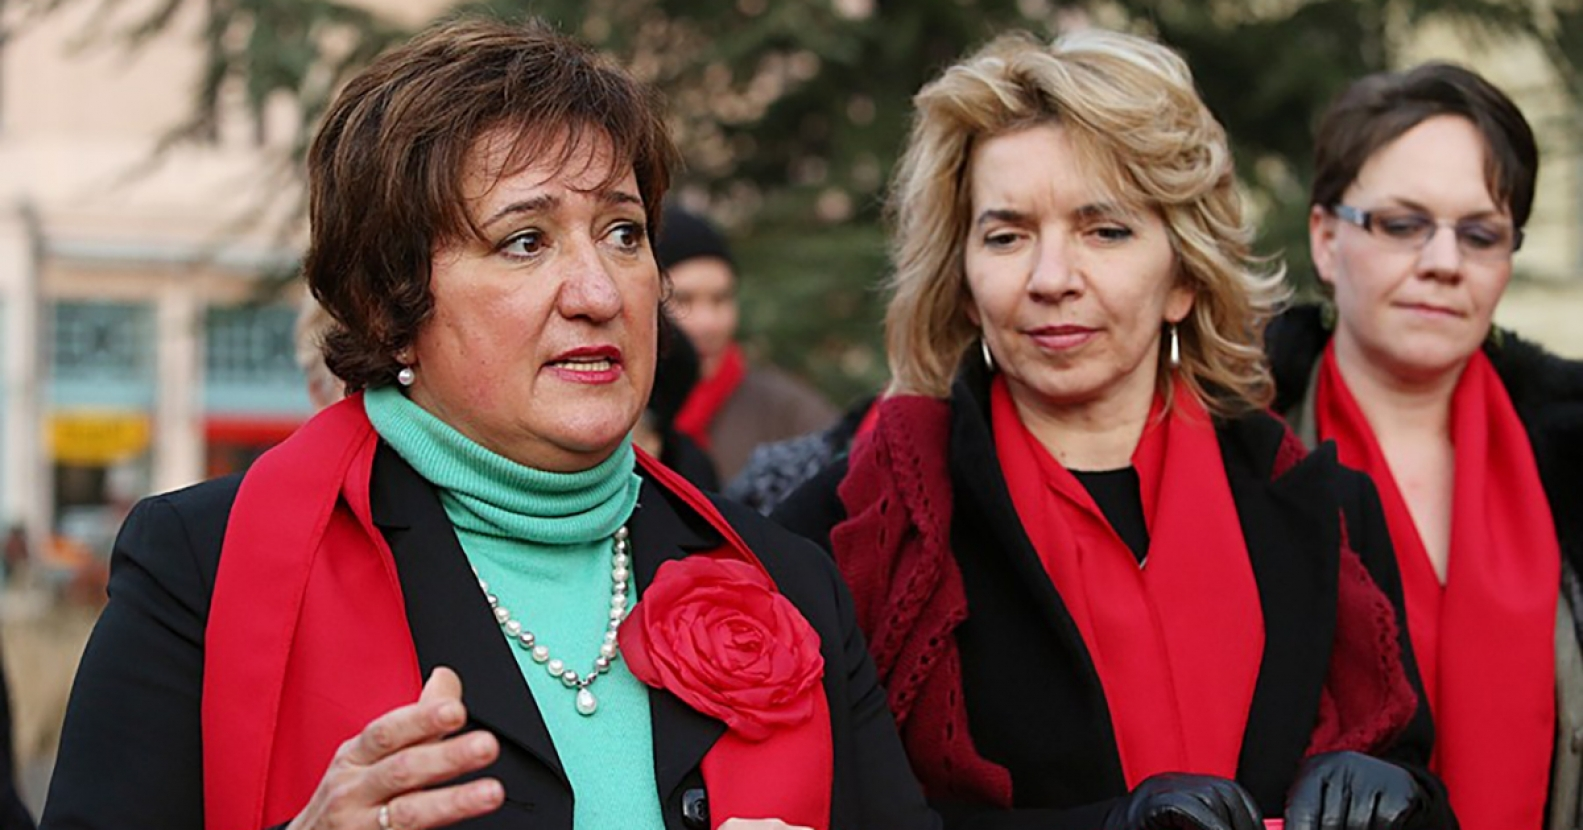 Government Still Not Ratifying Istanbul Convention on Prevention of Violence against Women